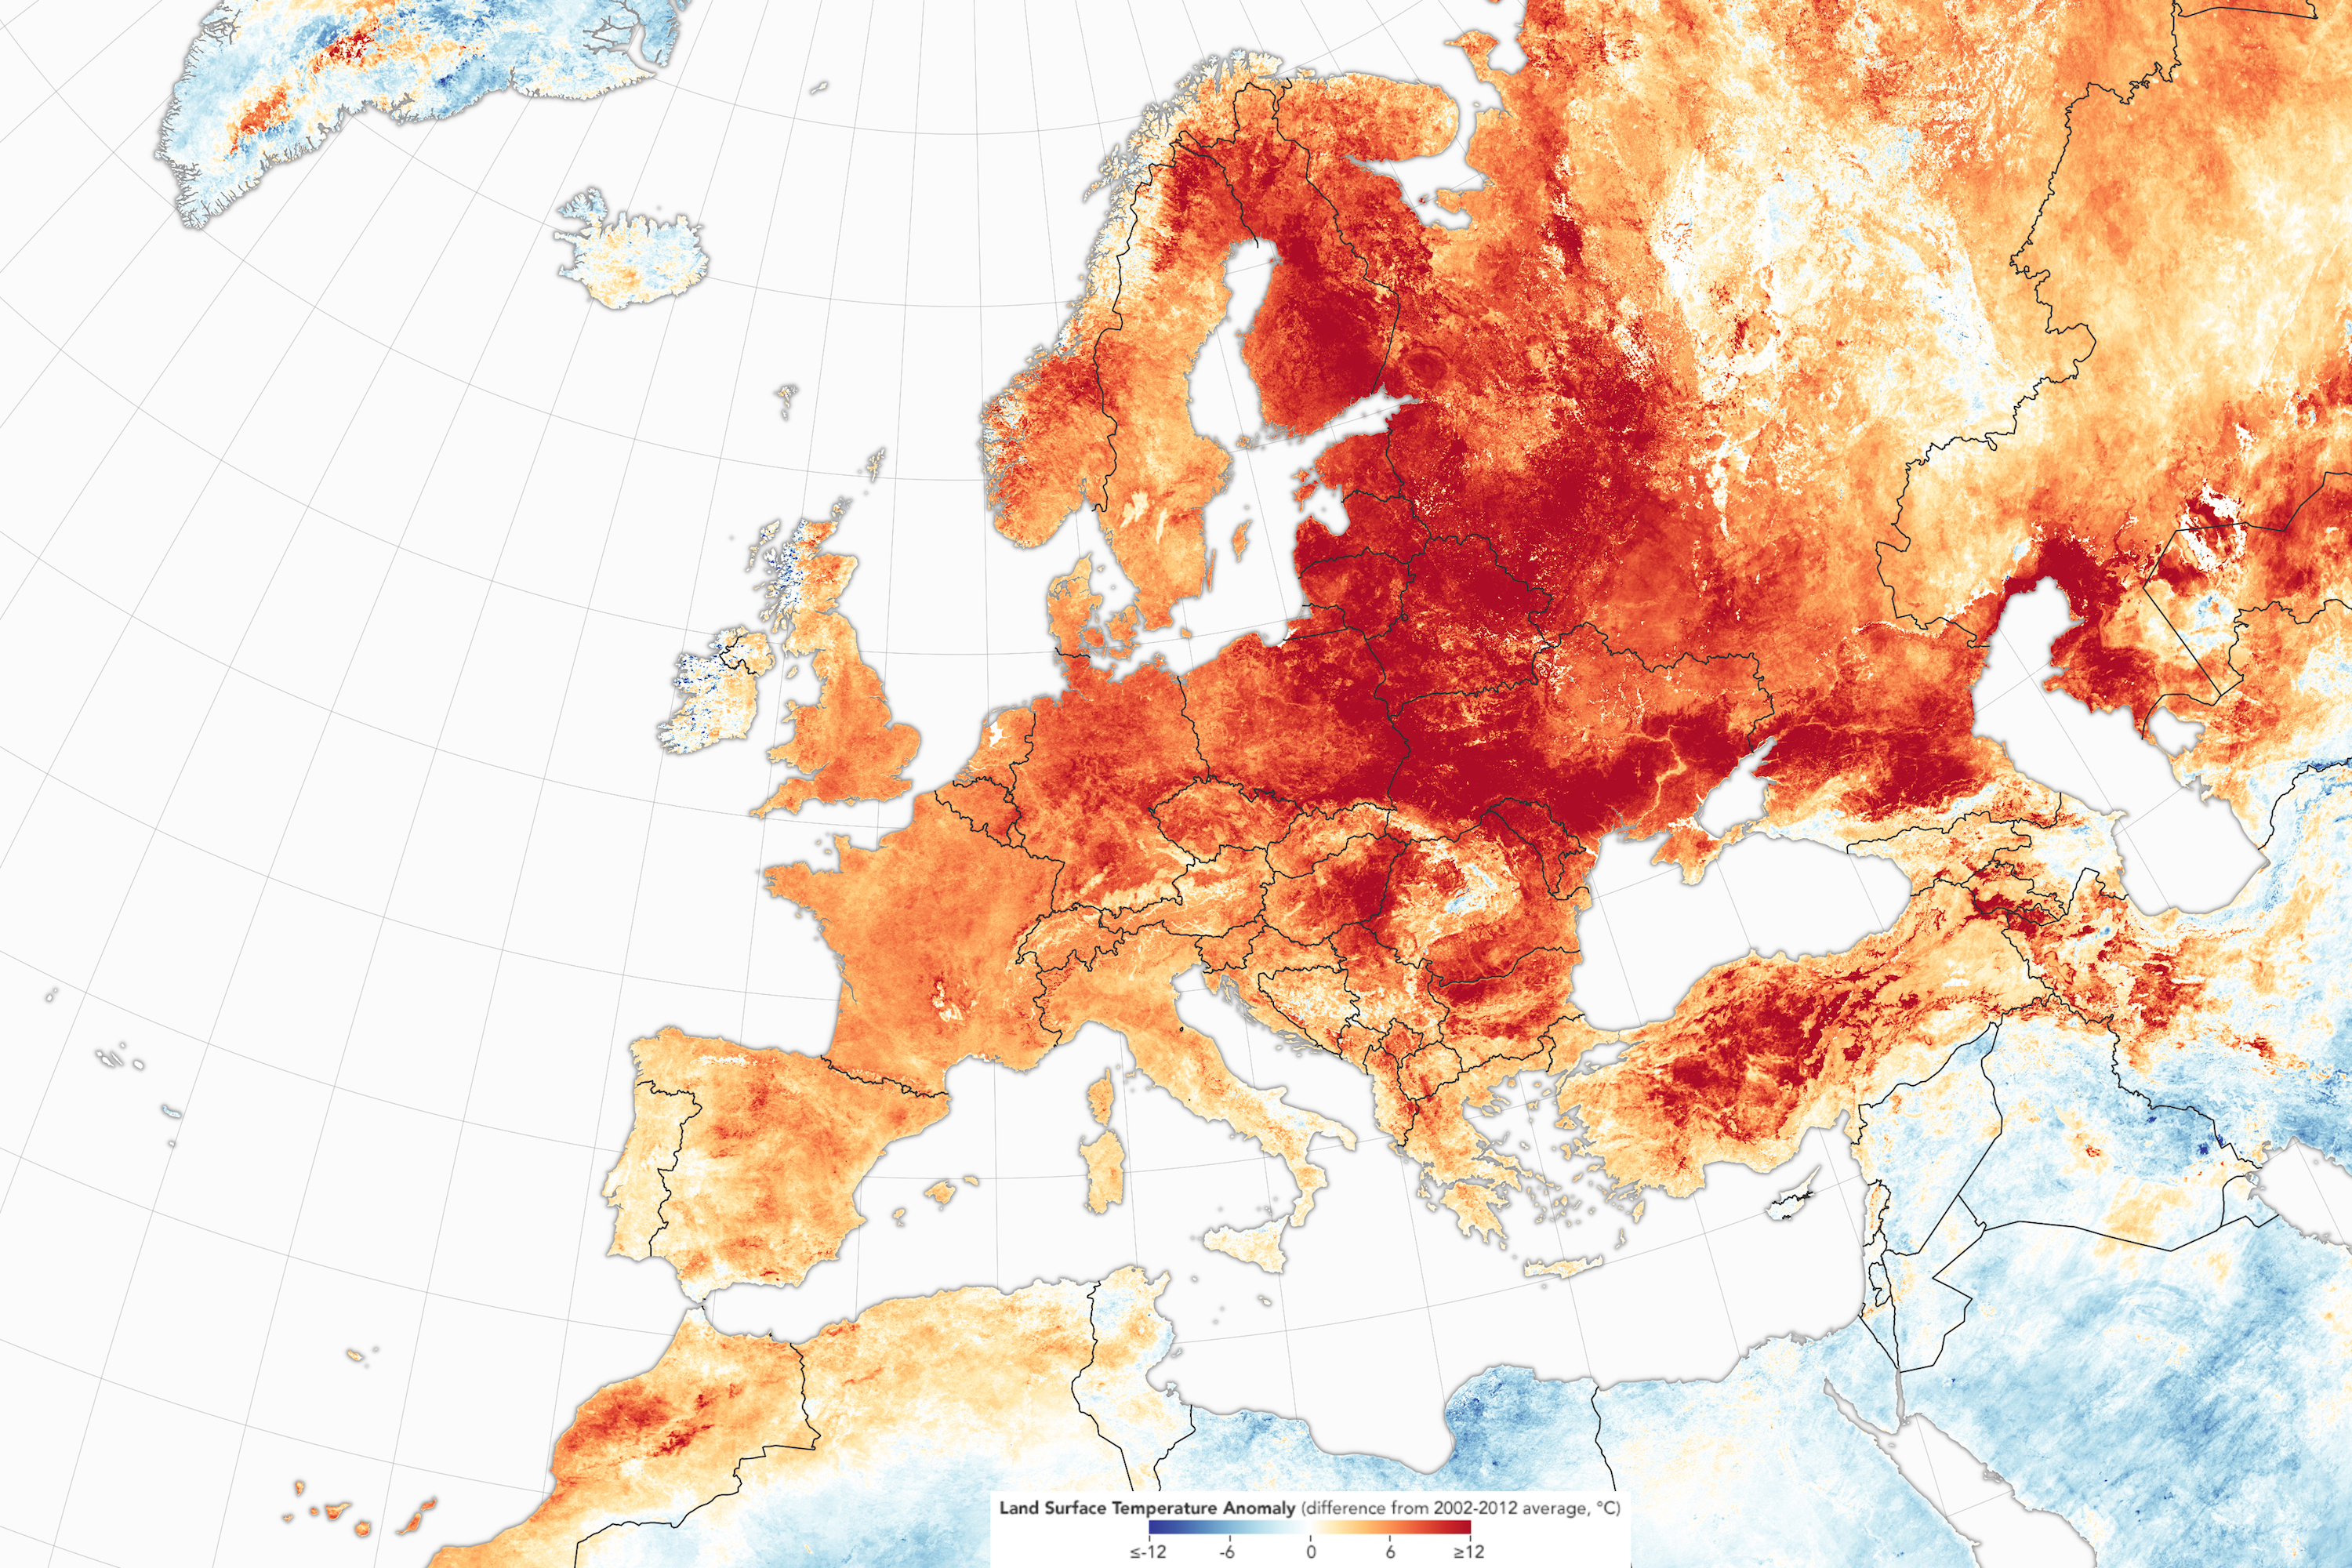 Europe - Temperatures anomaly (February 2019)